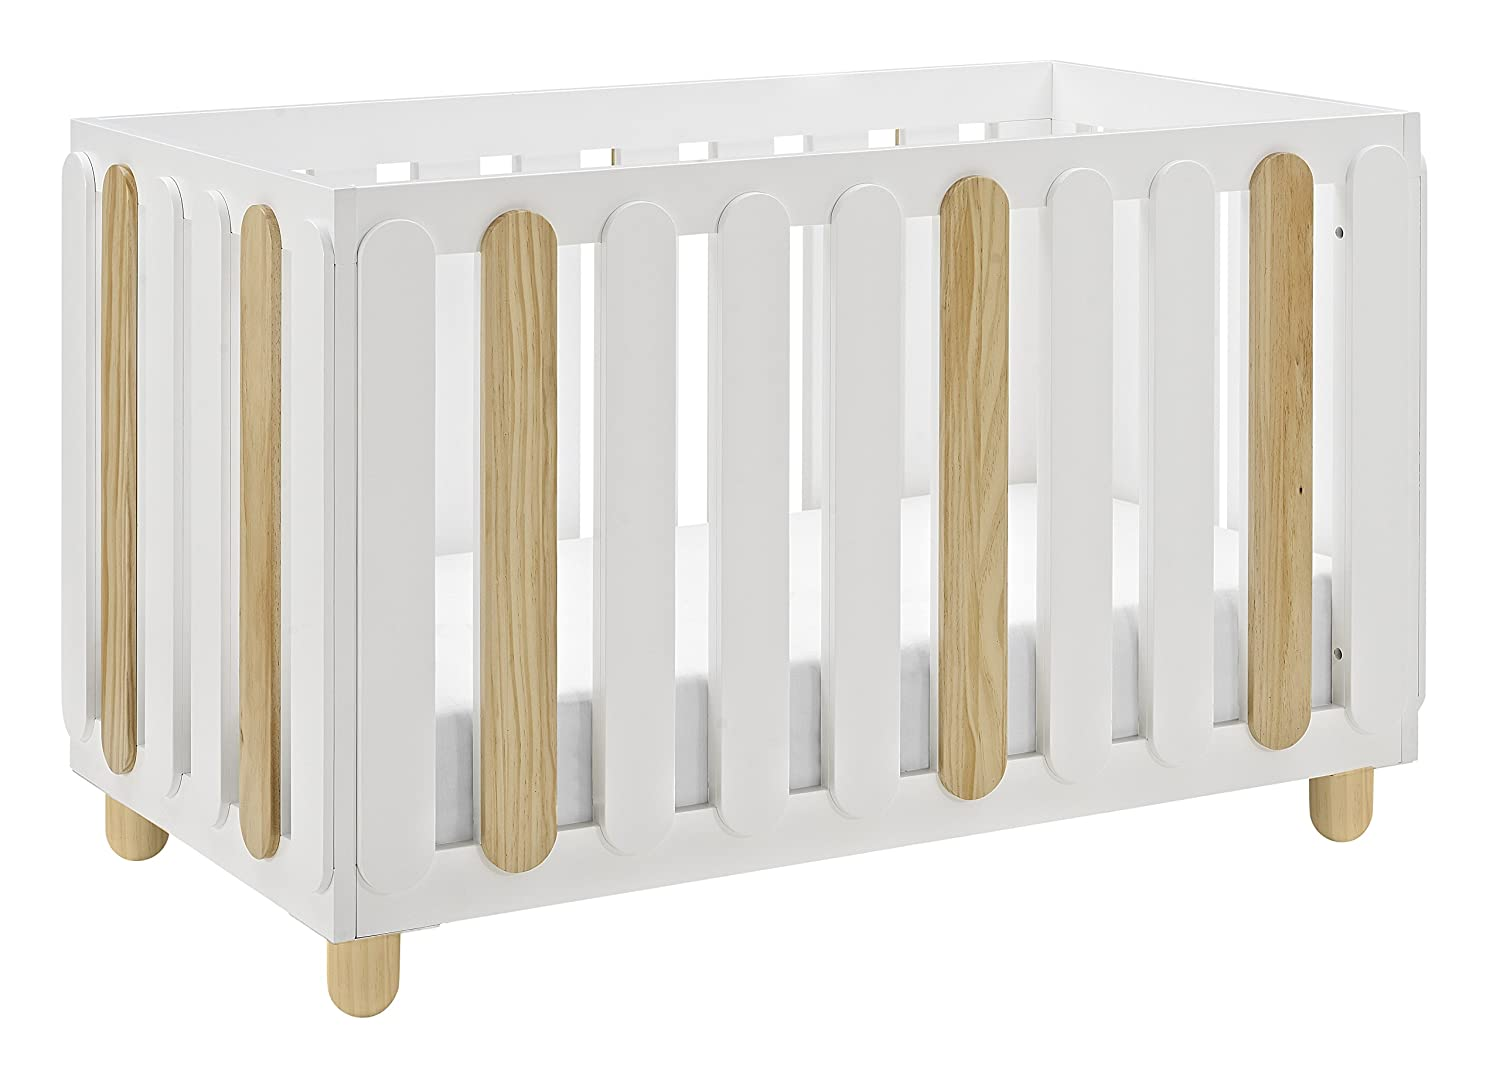 Some Assembly Required Three Position Adjustable Height Mattress Easily Converts to Toddler Bed Day Bed or Full Bed Storkcraft Sienna 3-in-1 Convertible Crib White//Natural